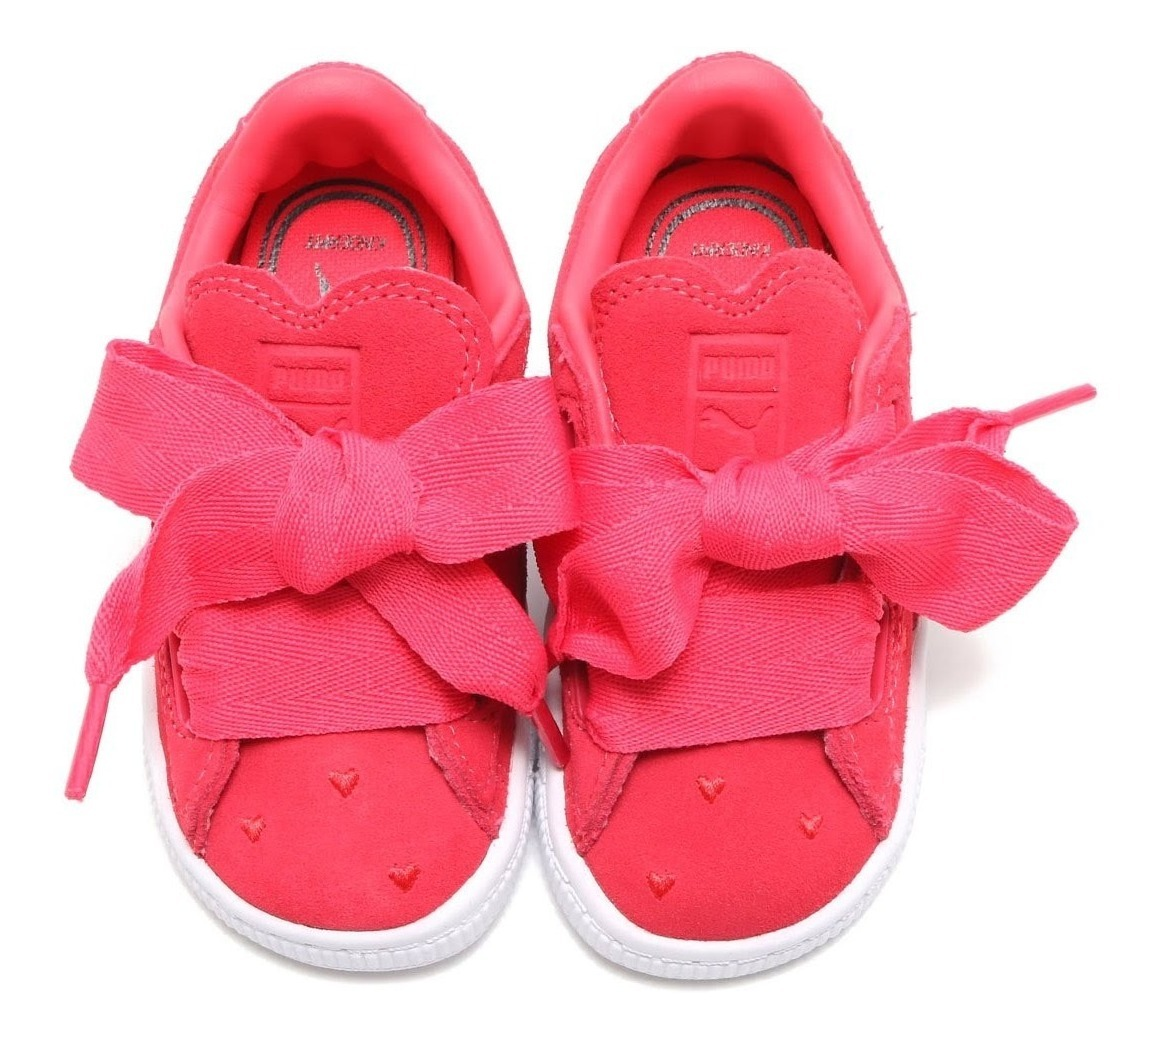 new arrival 4765a 5b364 Tenis Puma Suede Heart Valentine Infant 365137-01 Rosa